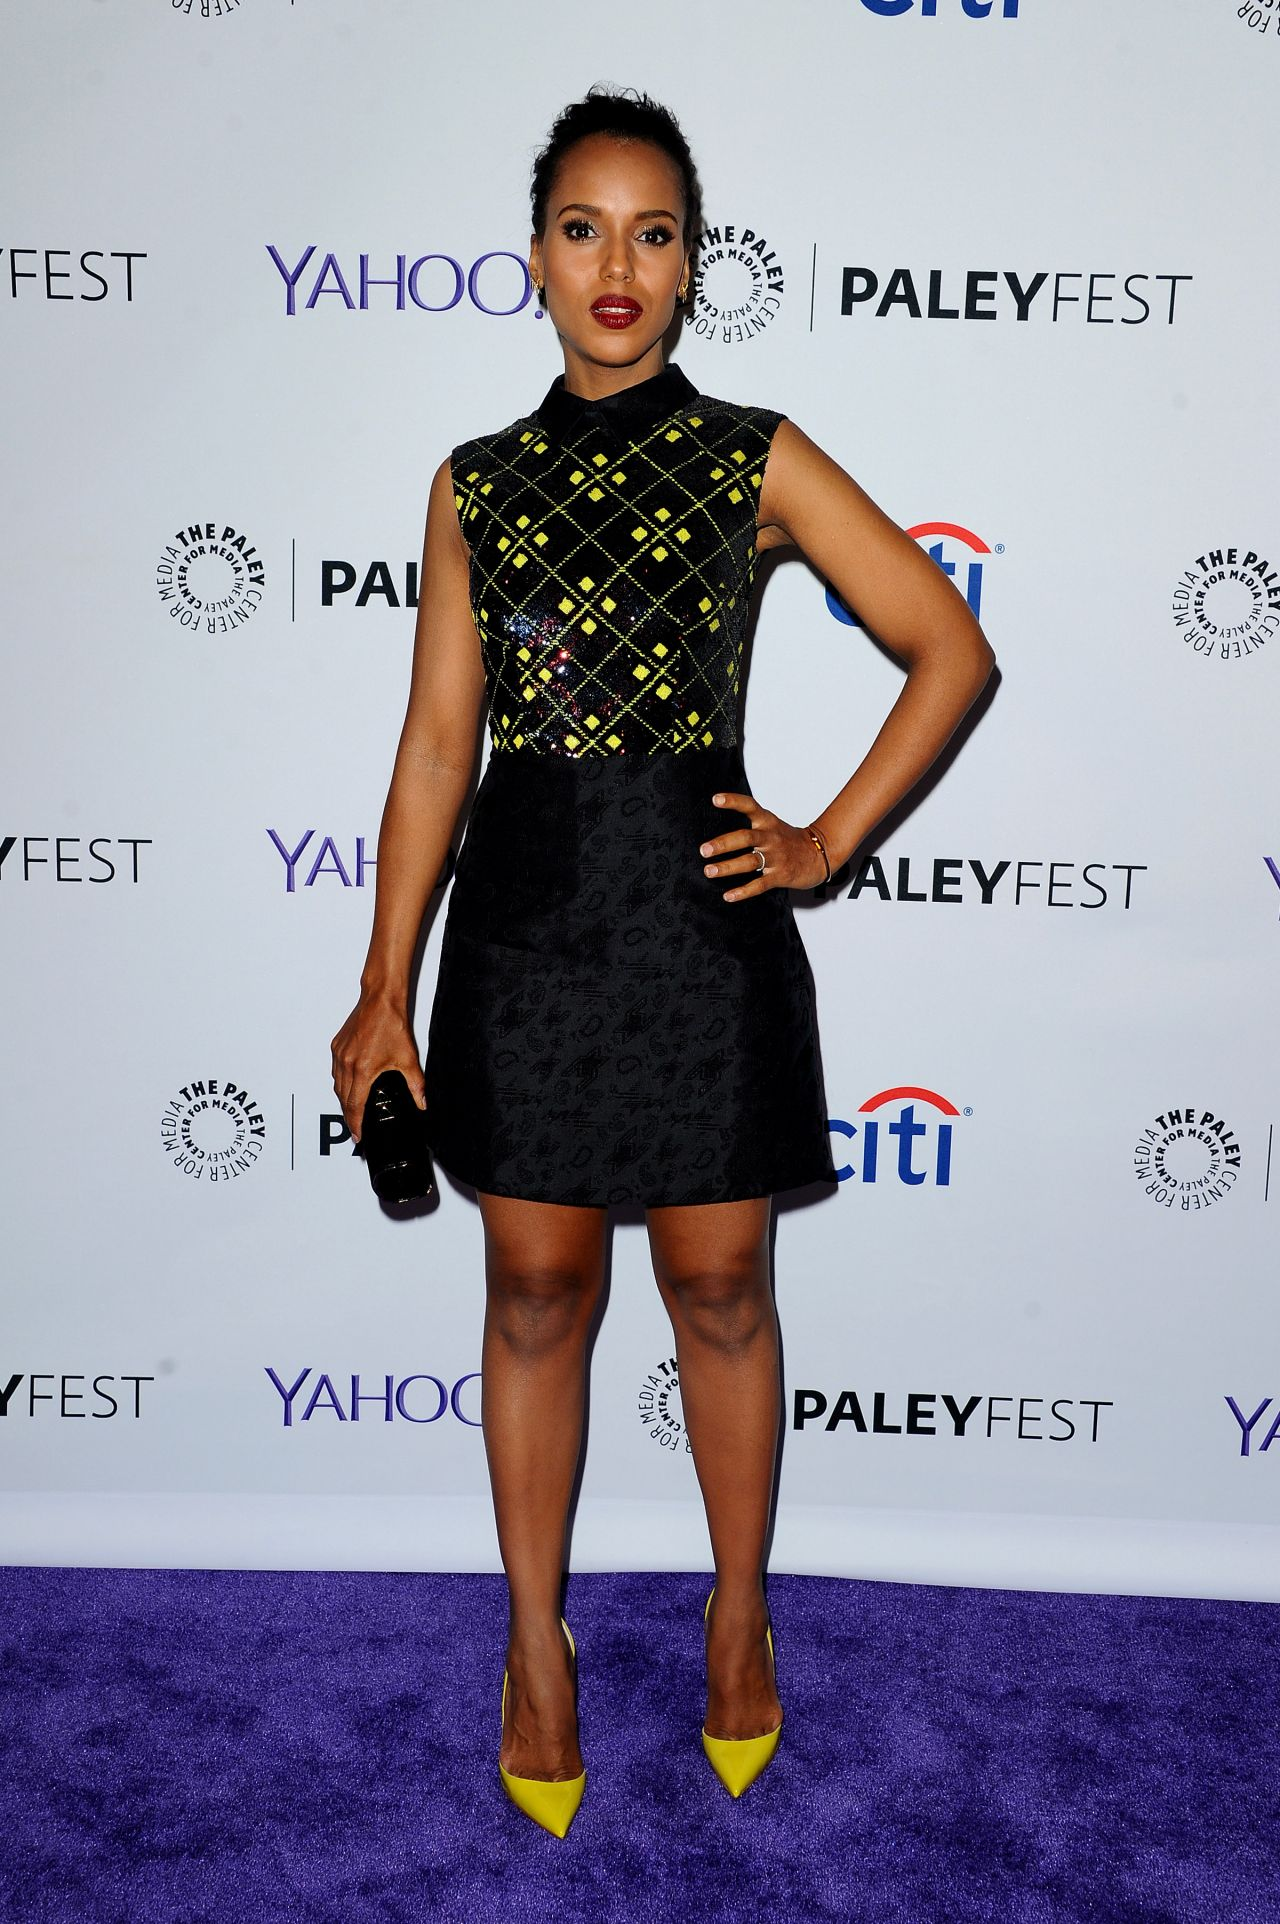 kerry-washington-in-mary-katrantzou-paleyfest-la-presents-scandal